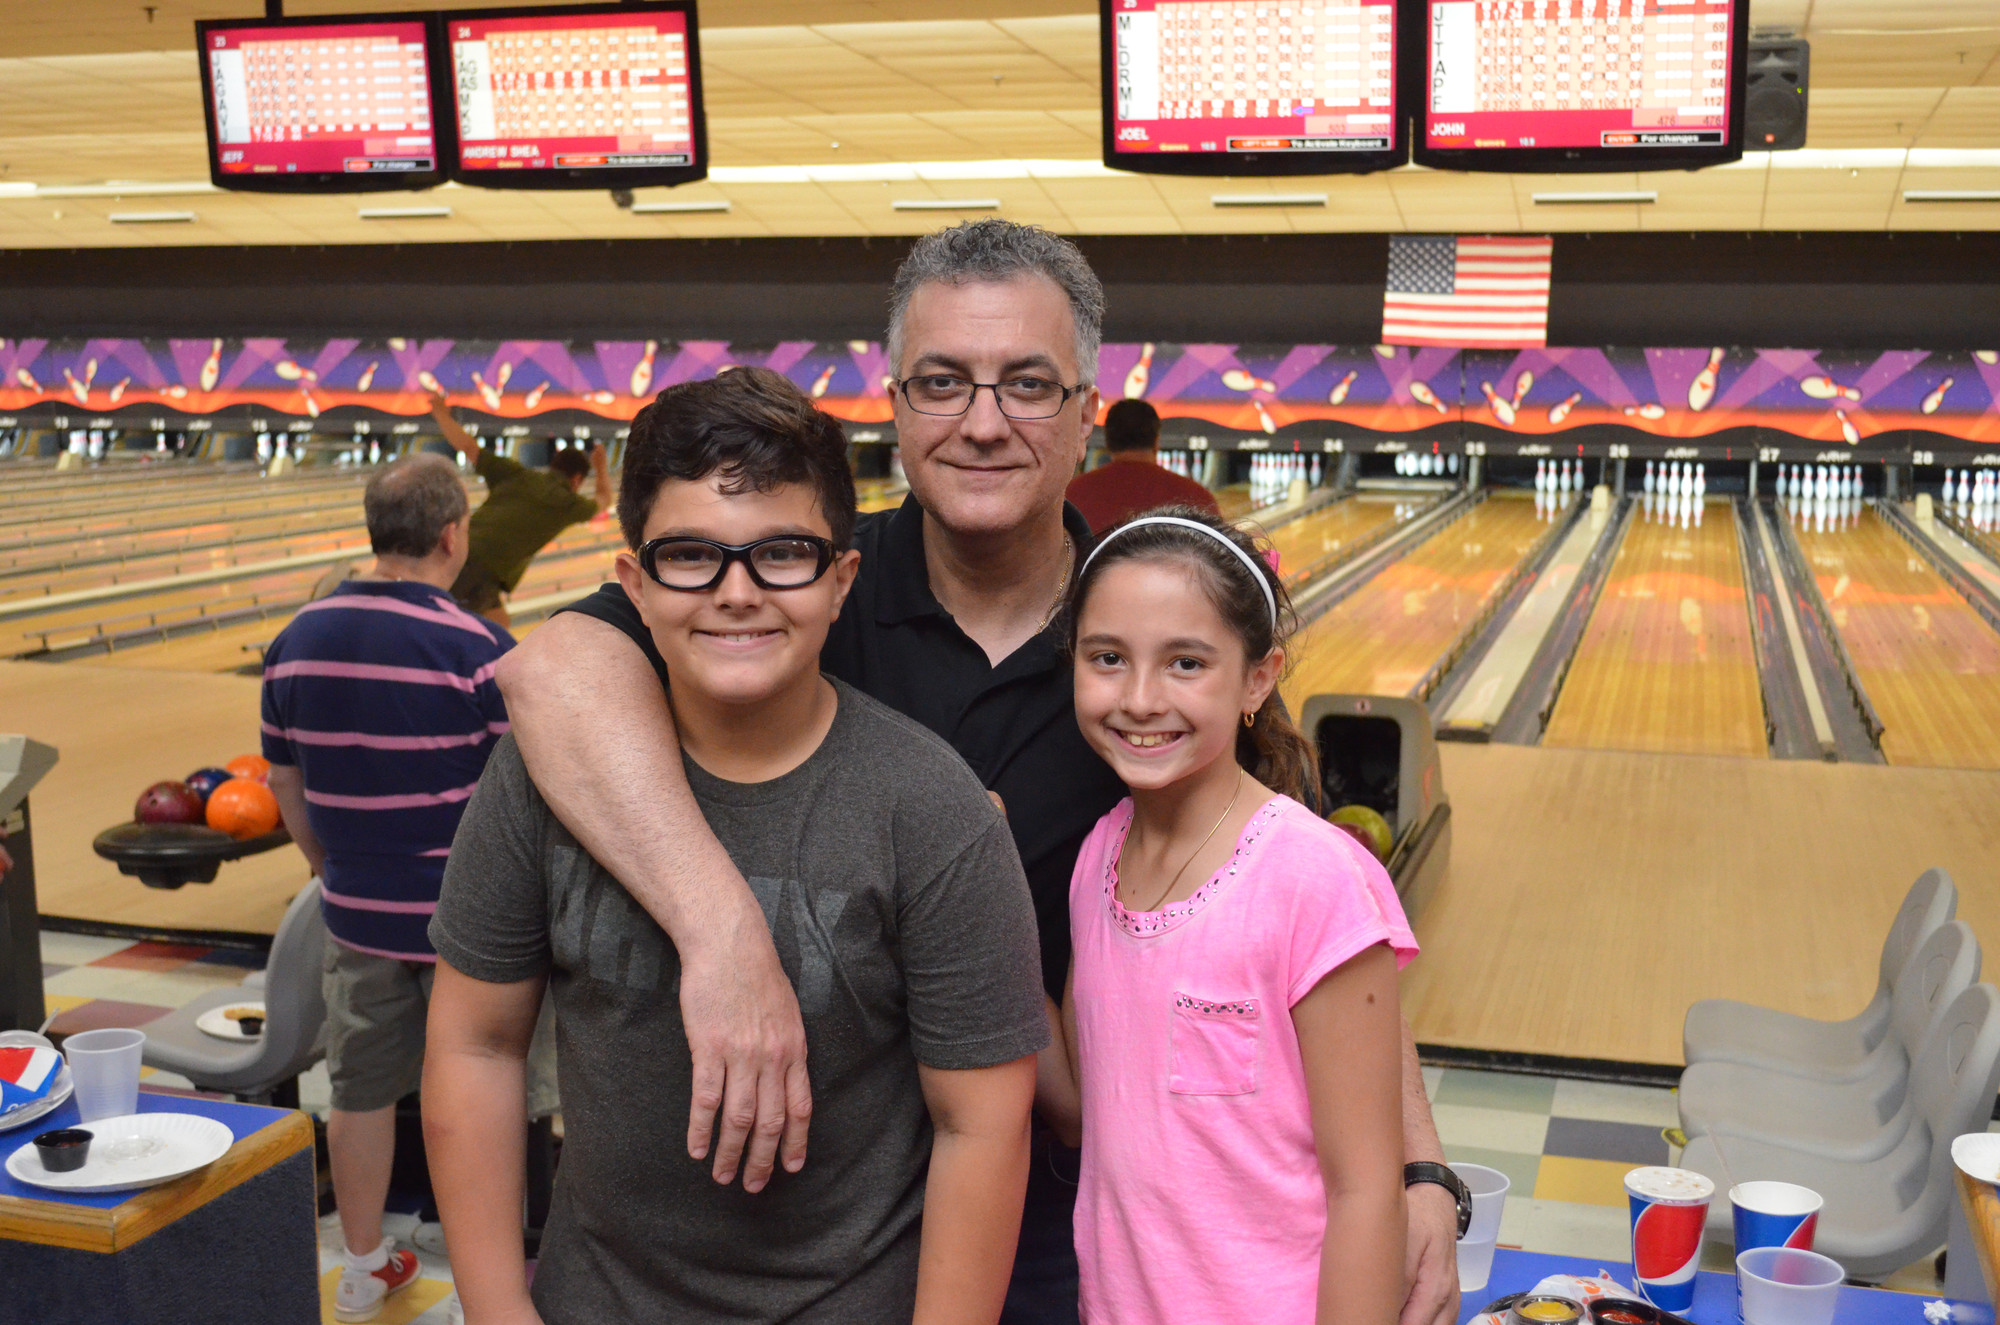 It was a happy father�s day for Peter Strifas, who smiled with his daughter, Taylor, 9, and son, John, 10.